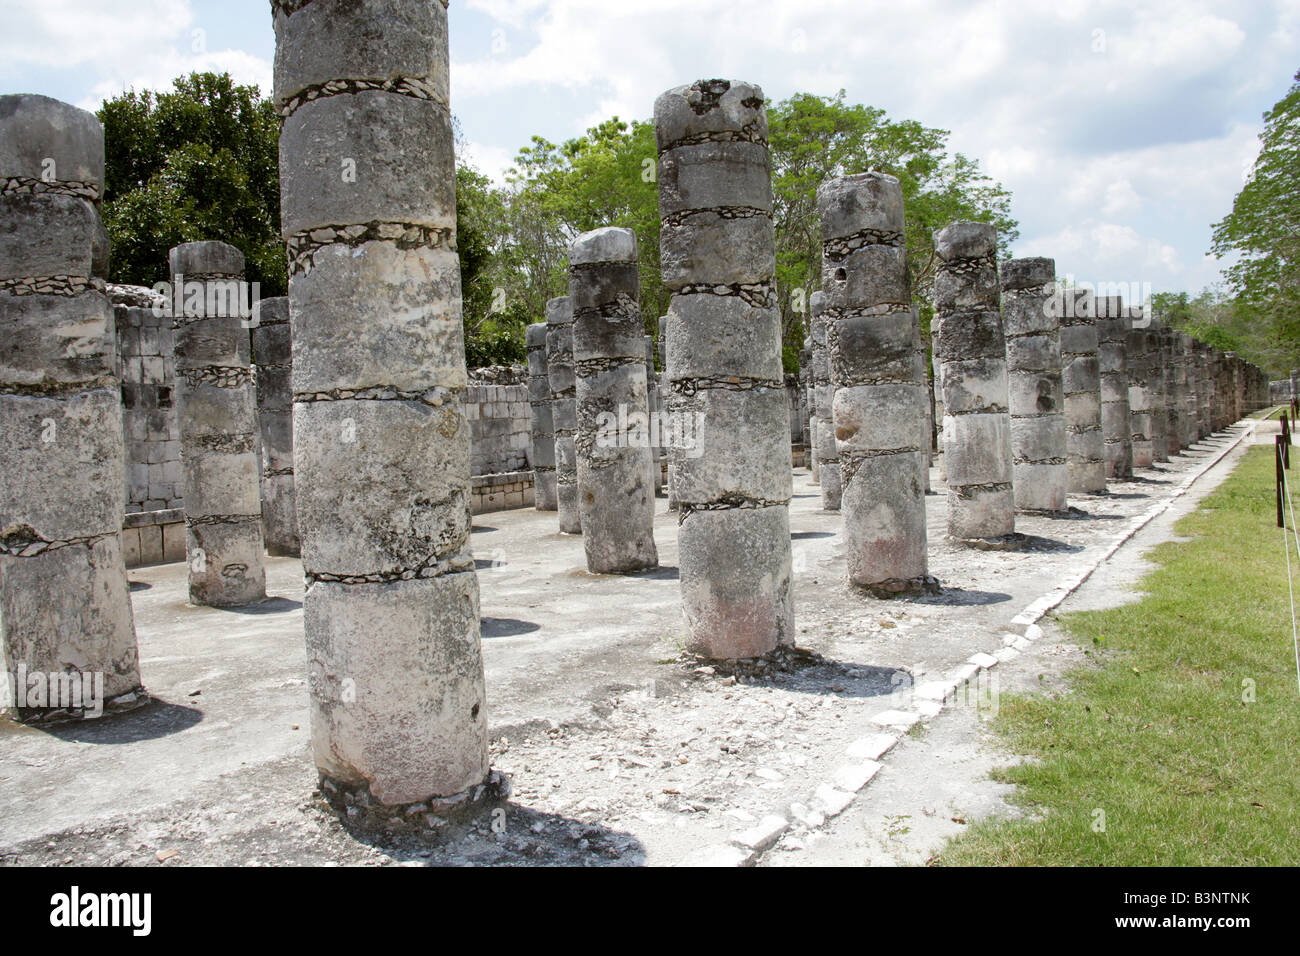 Western Colonnade, Chichen Itza Archaeological Site, Chichen Itza, Yucatan Peninsula, Mexico Stock Photo